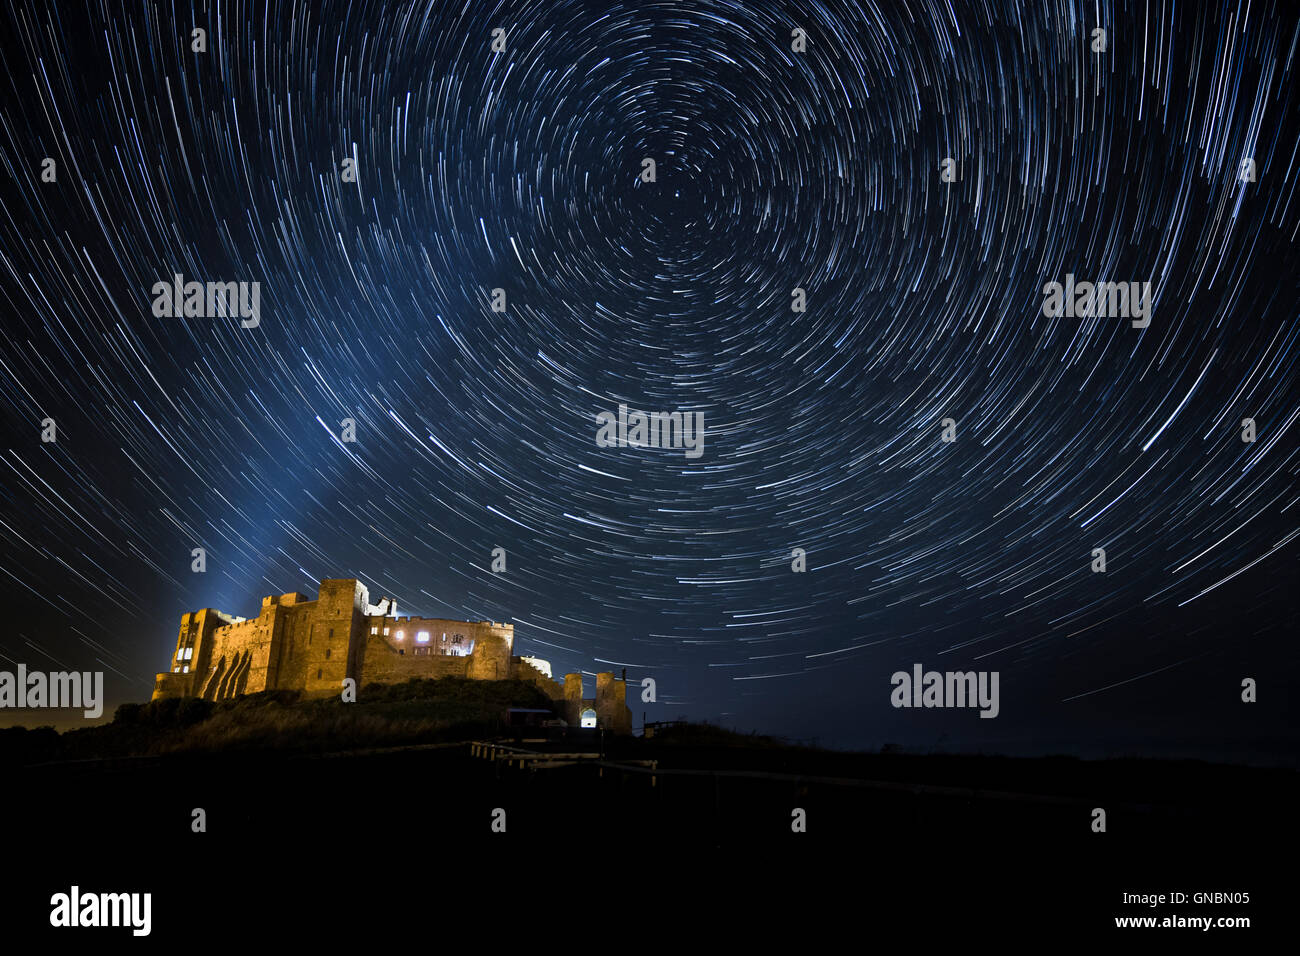 A Night Sky full of Stars at Bamburgh Castle in Northumberland, UK - Stock Image